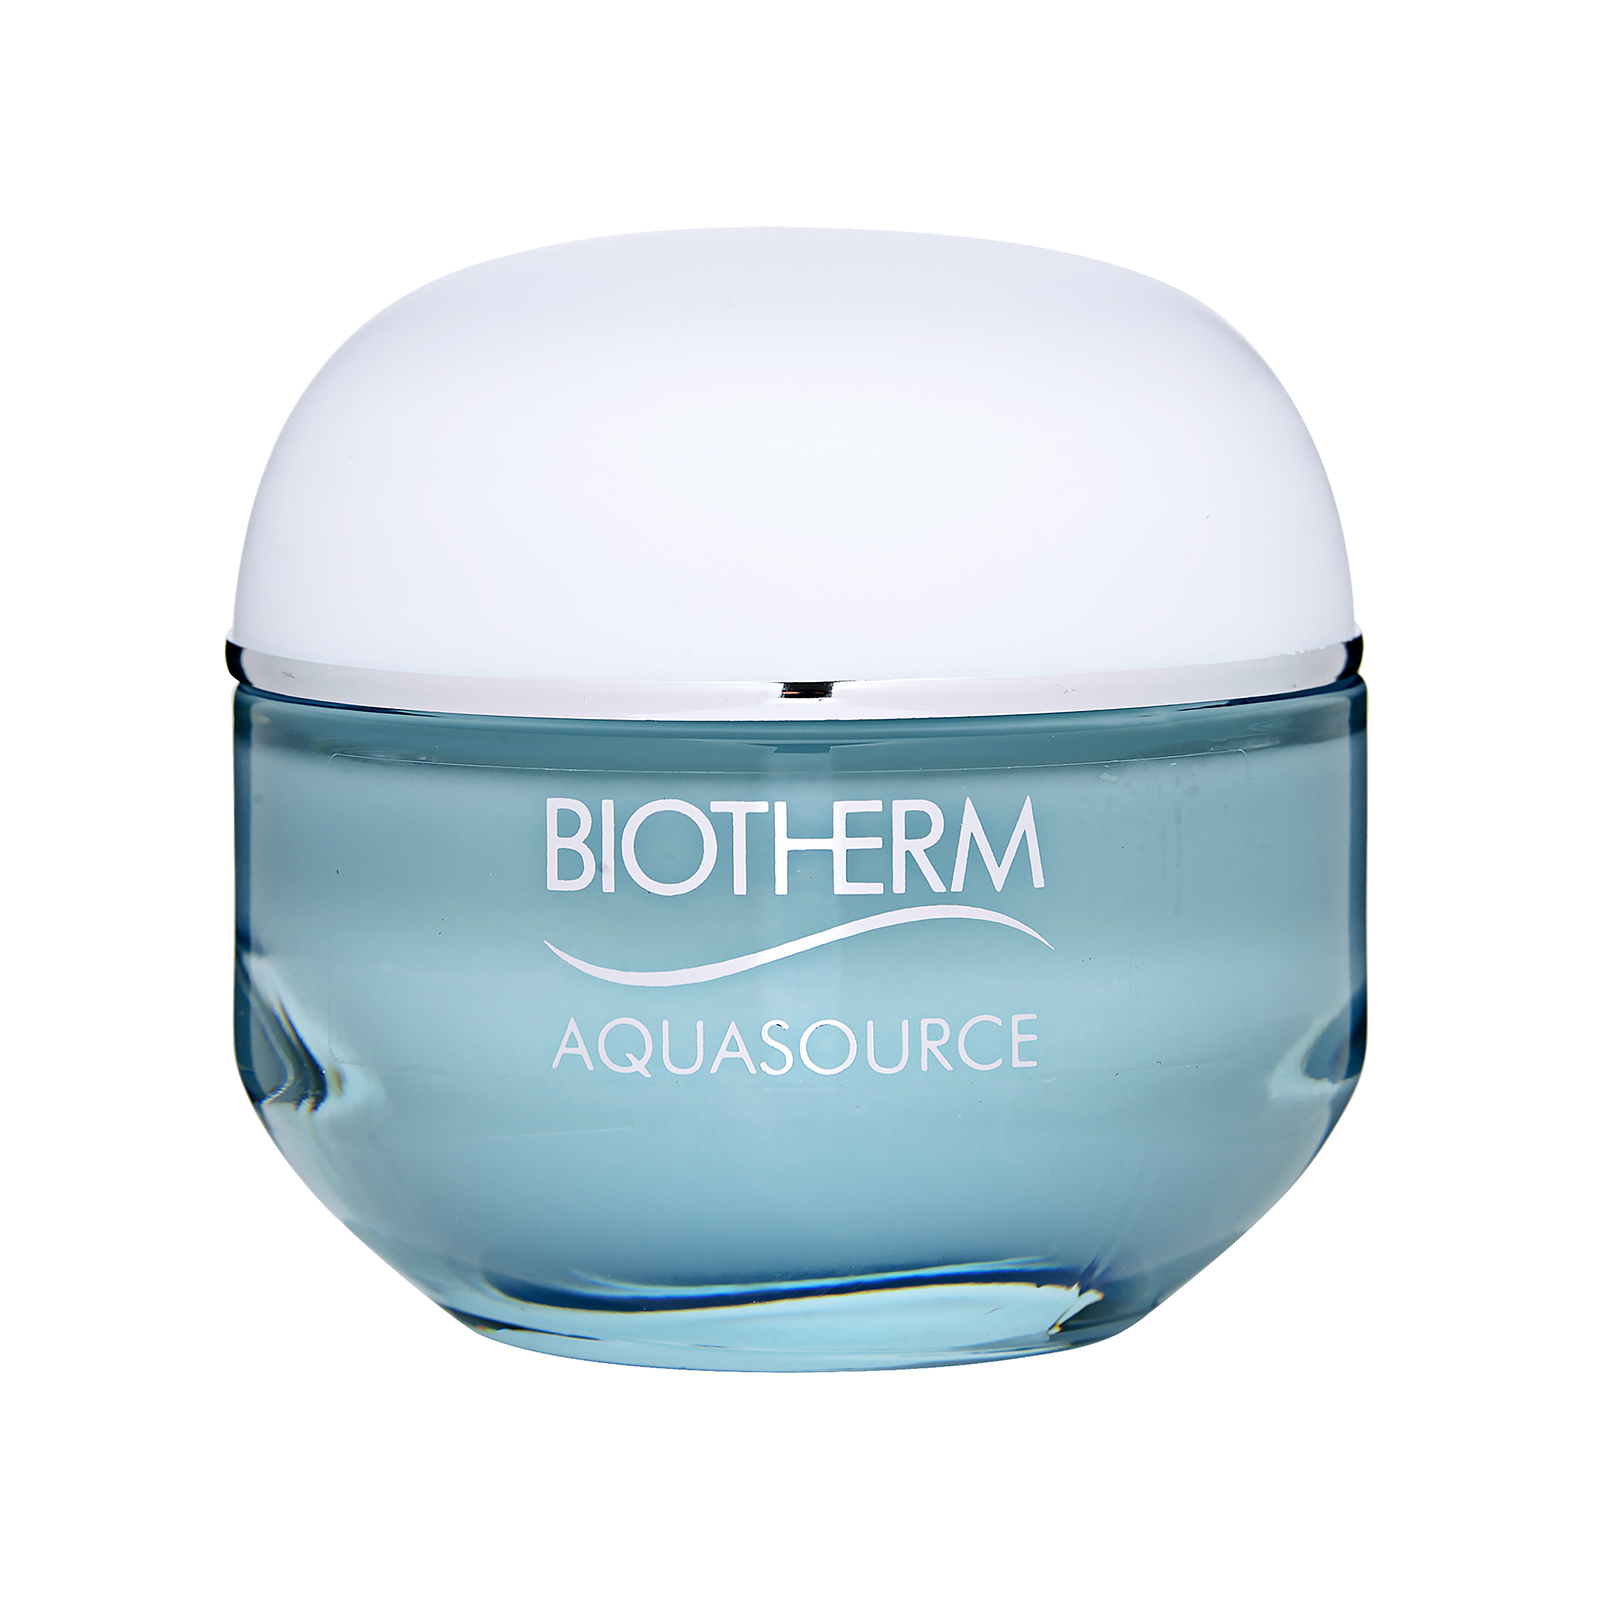 Biotherm Aquasource  Skin Perfection 24h Moisturizer - High-Definition Perfecting Care (For All Skin Types) 50ml,